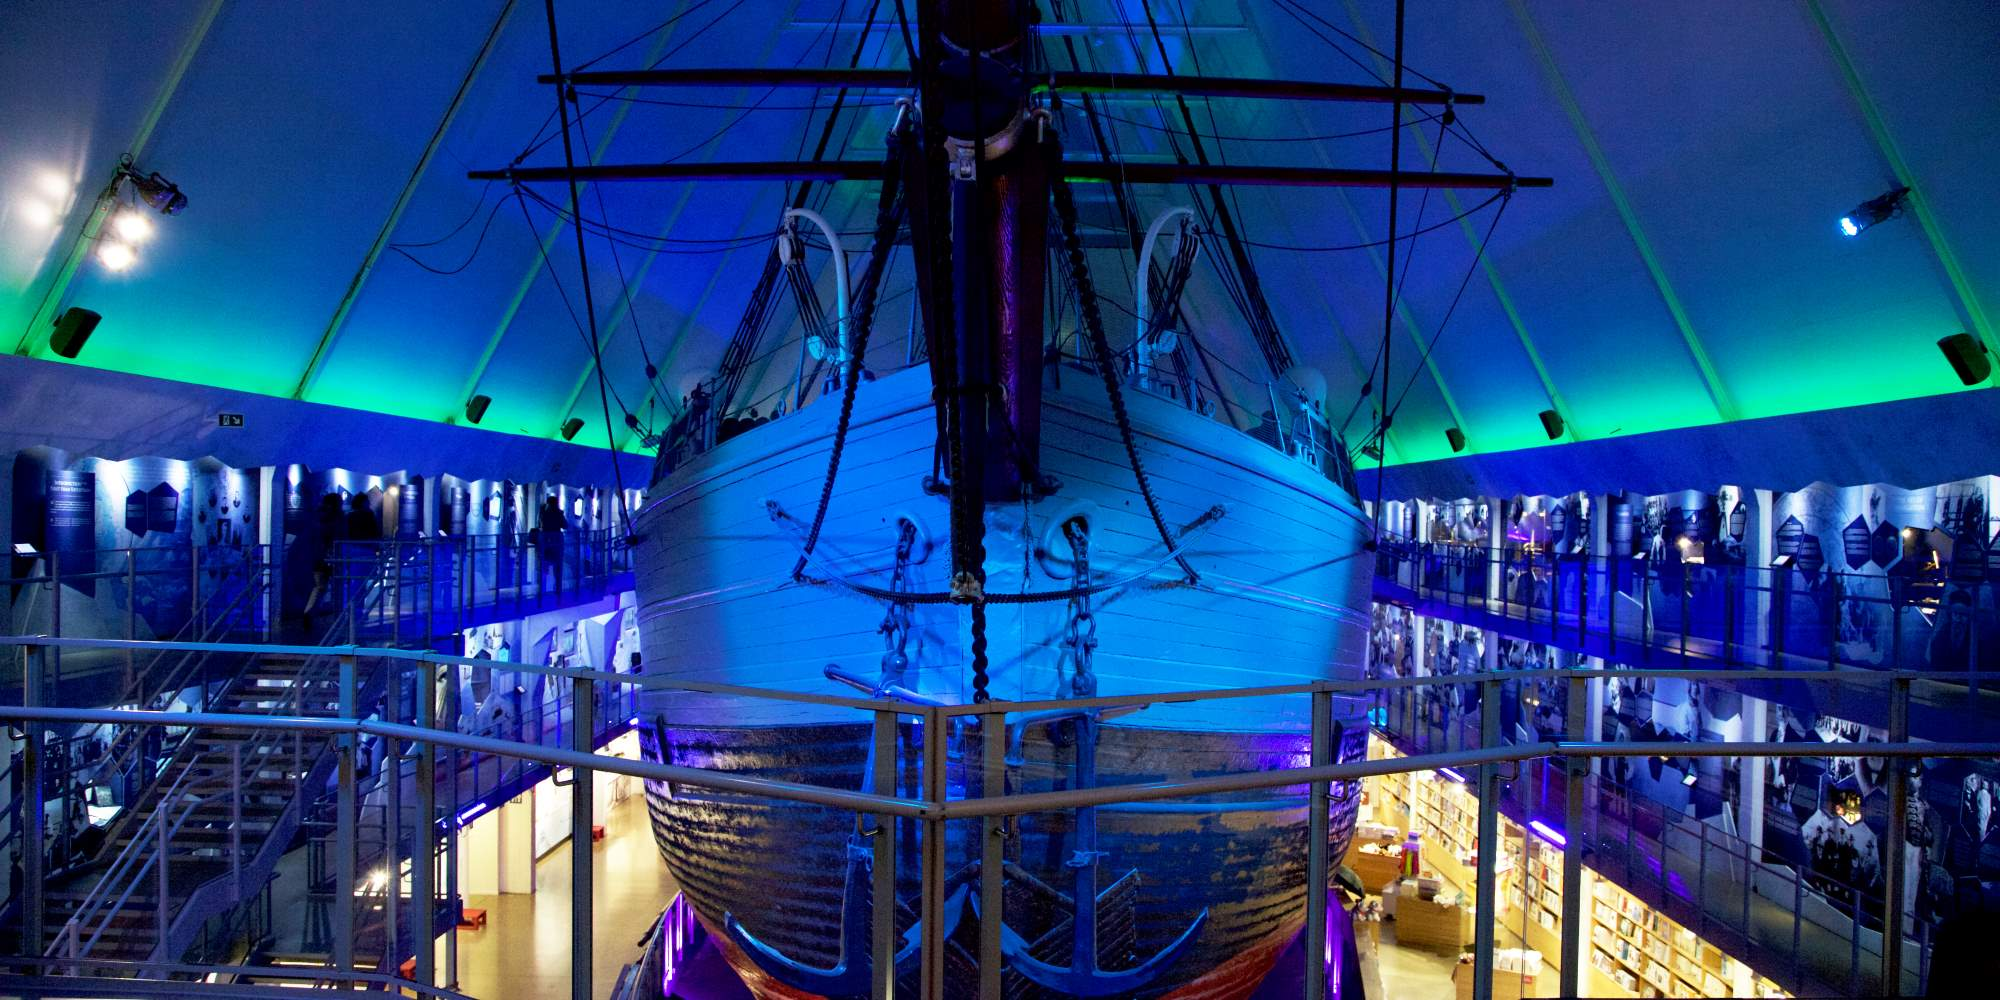 Polar ship Fram at the Fram Museum, Oslo